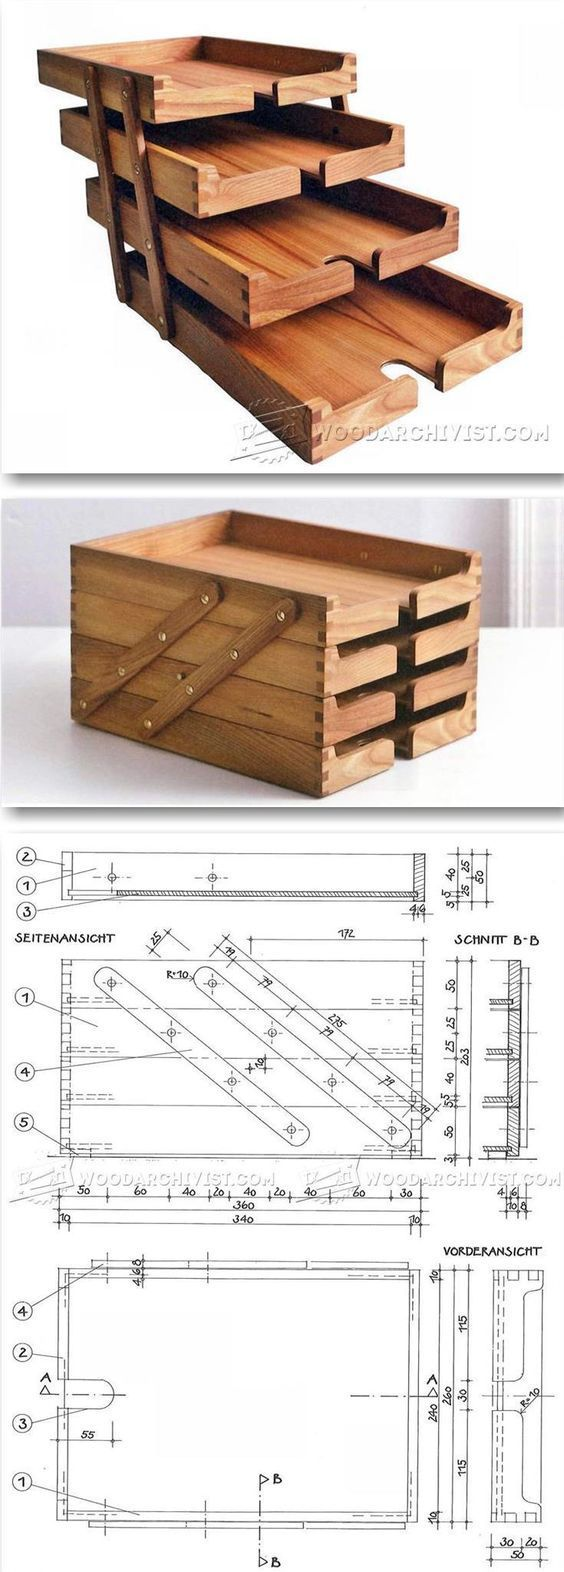 Wooden Desk Tray Plans - Woodworking Plans and Projects ...